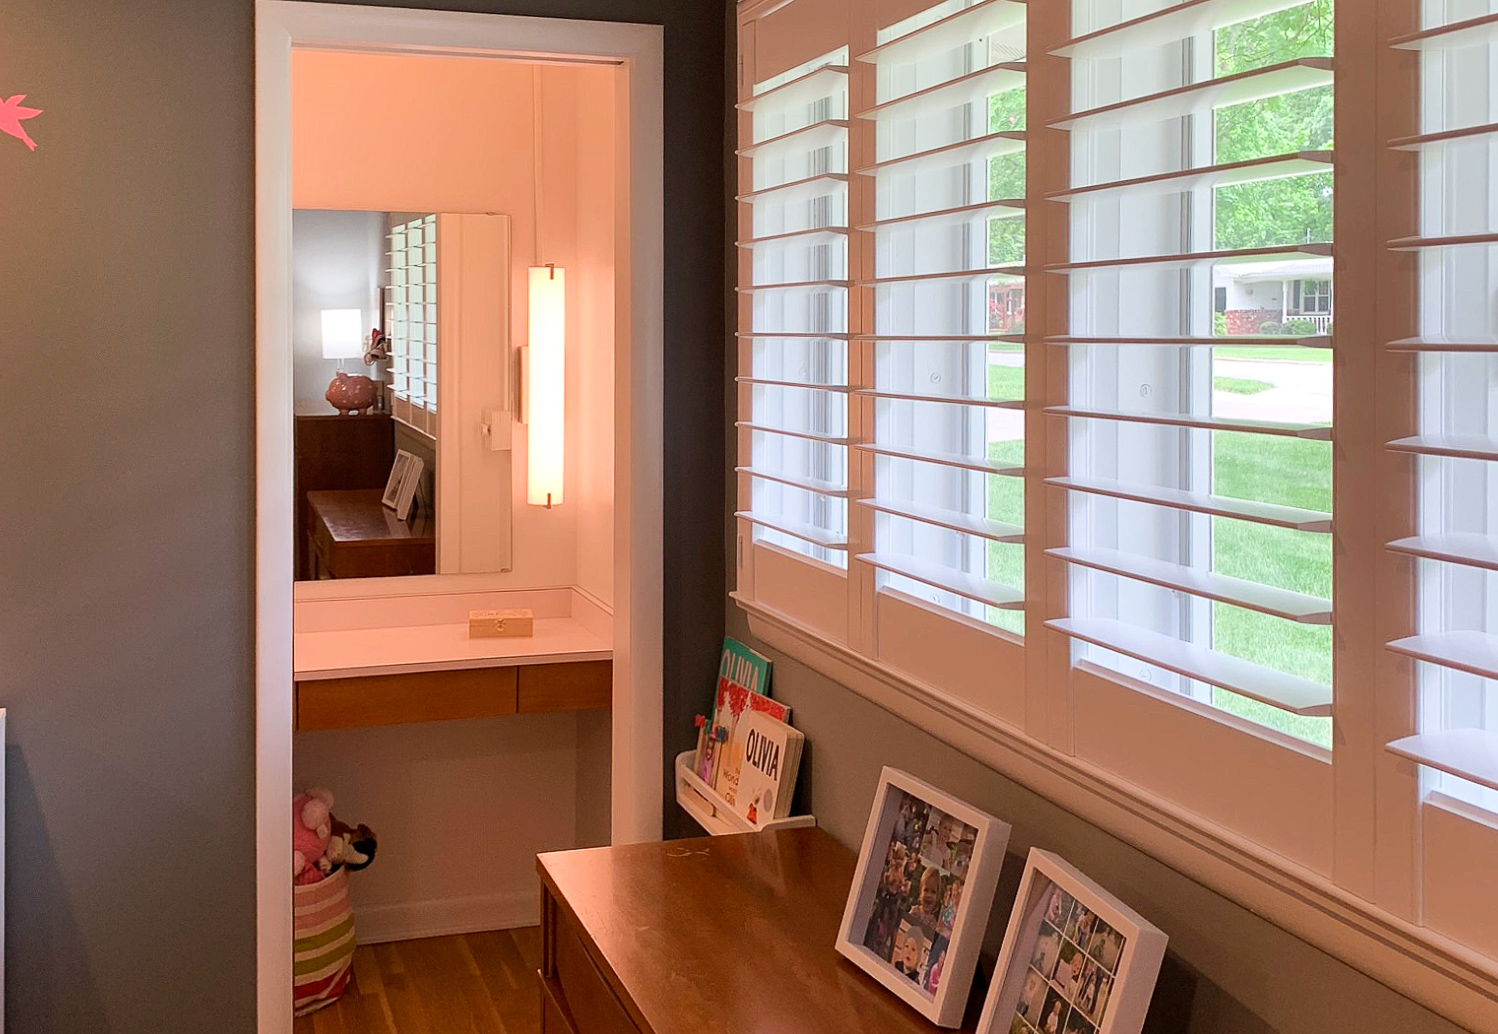 Feature Highlight - In addition to two closets, the first bedroom has a one-of-a-kind vanity room with a pocket door plus the original vanity desk and counter. The room was designed for the original homeowners' daughter.